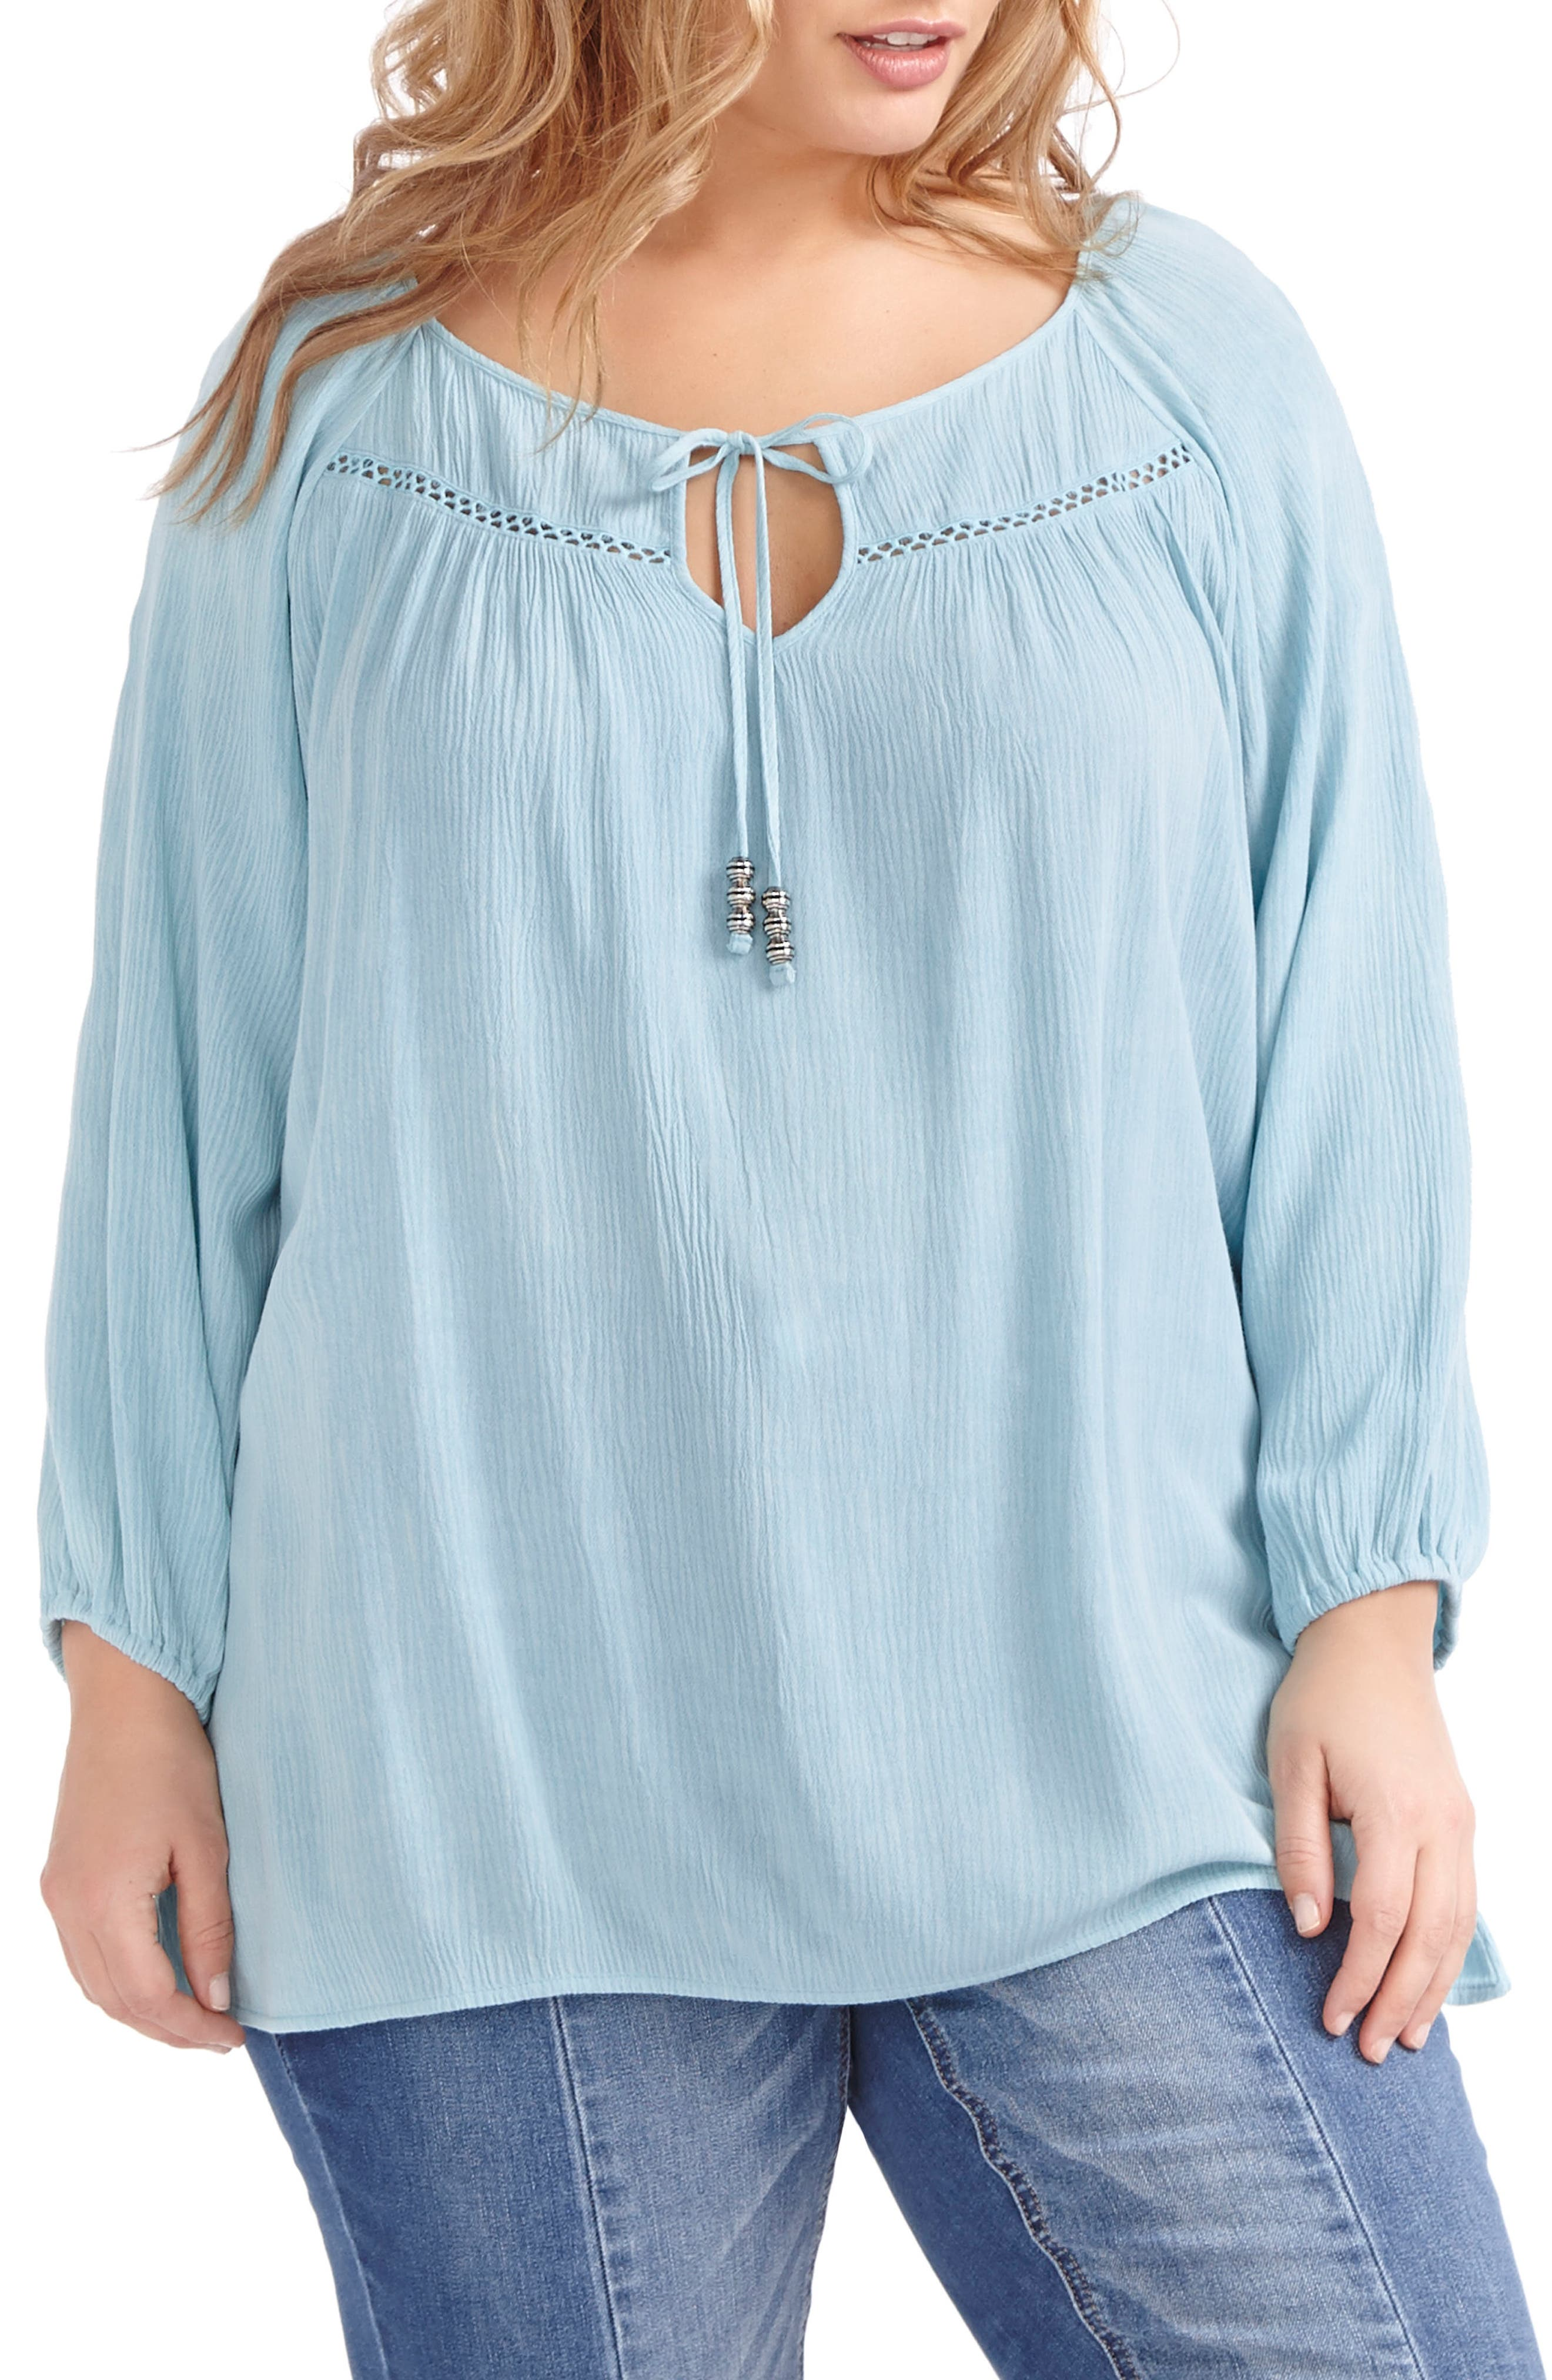 ADDITION ELLE LOVE AND LEGEND Peasant Blouse